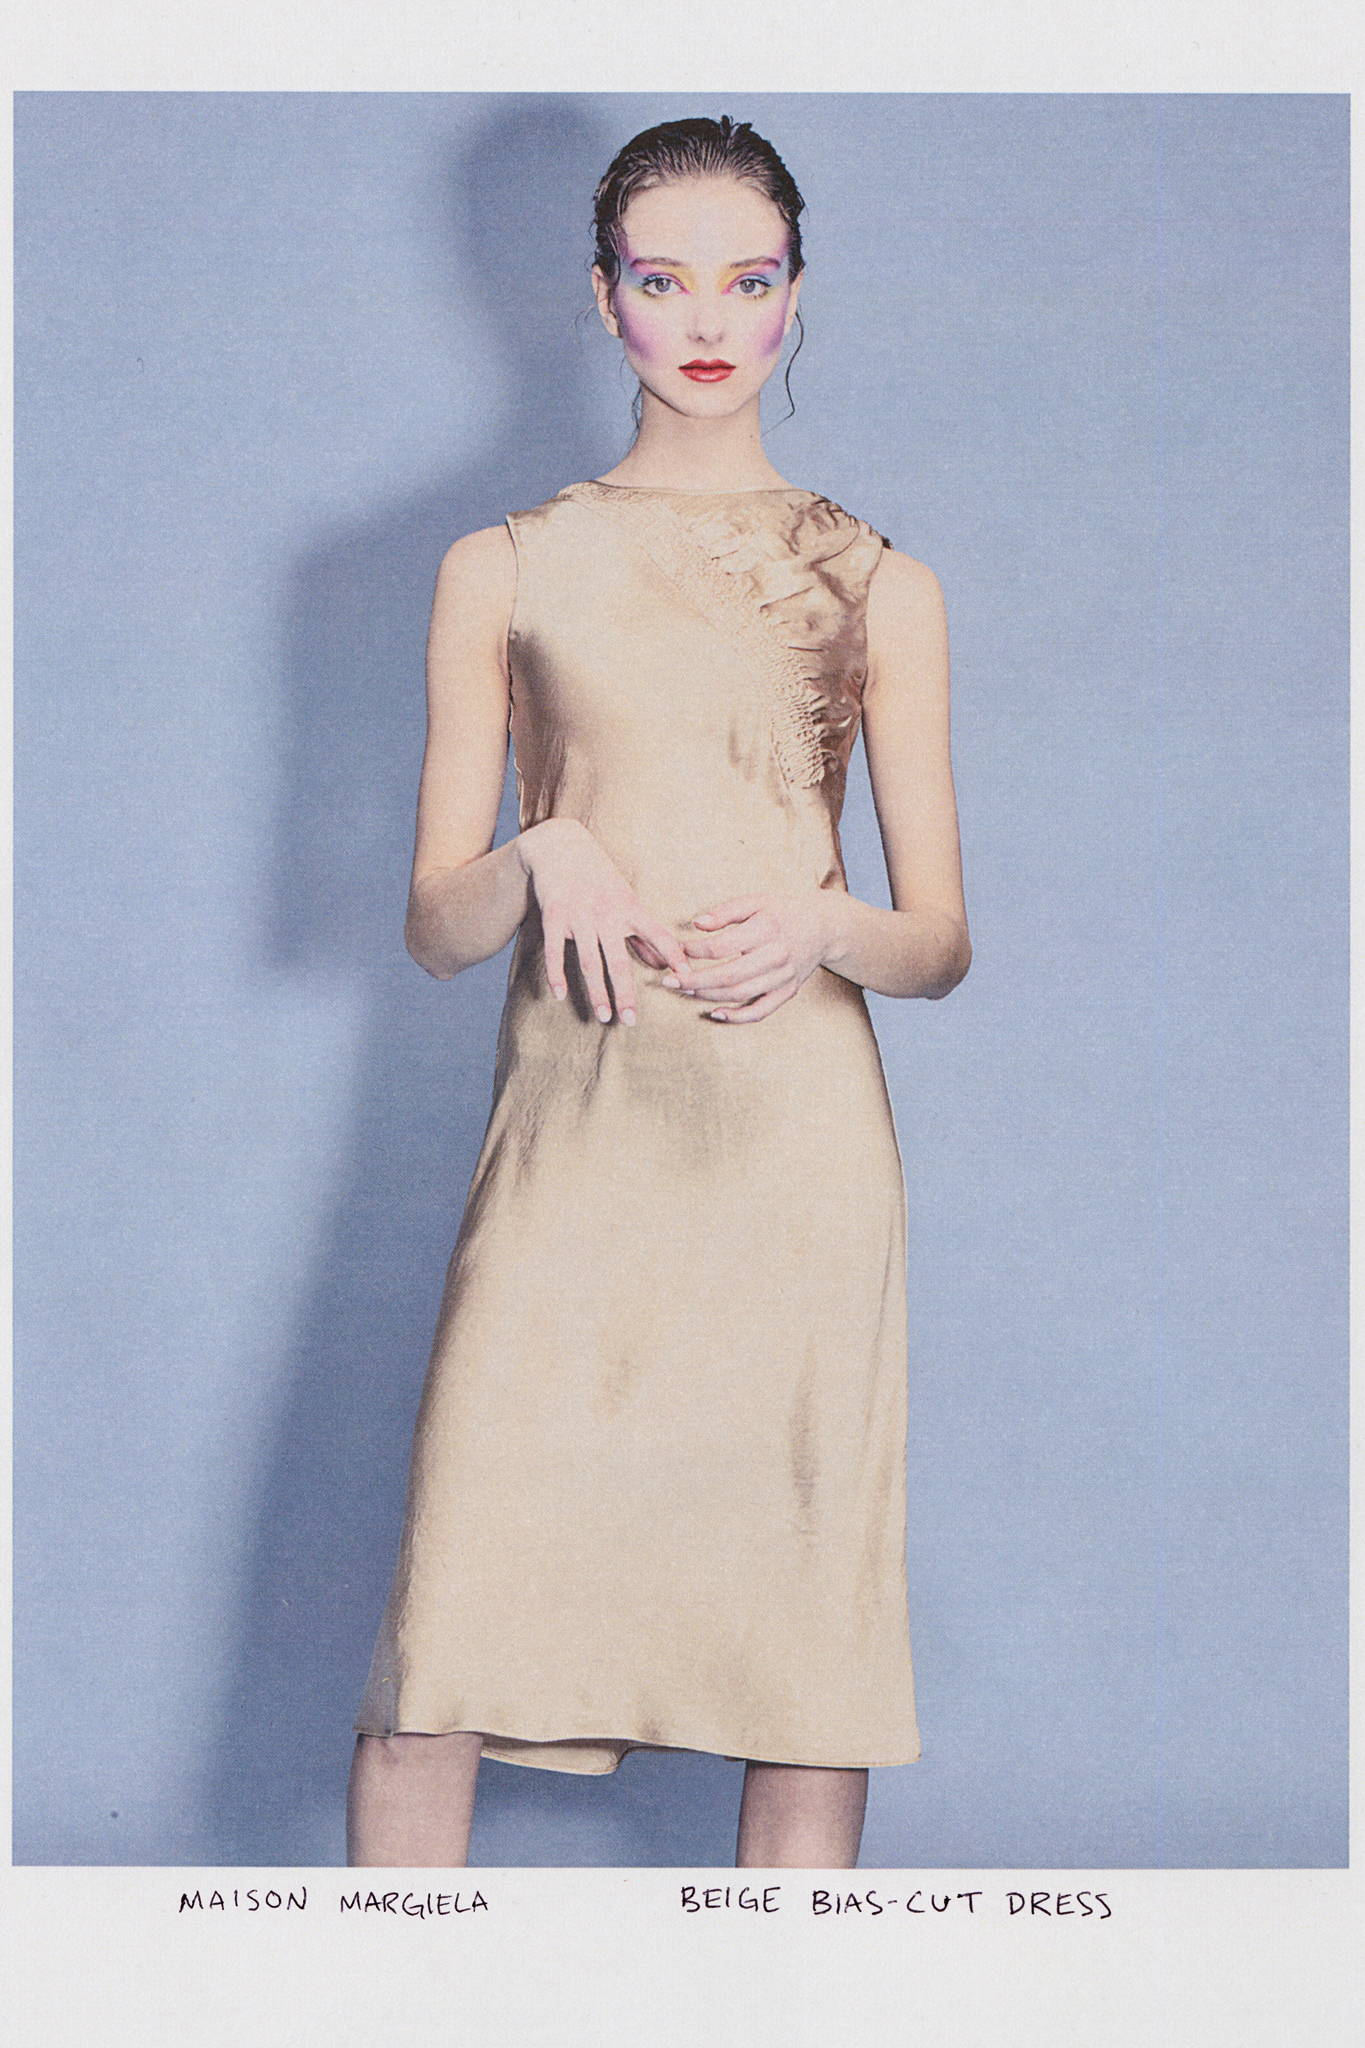 Maison Margiela Beige Bias-cut Dress